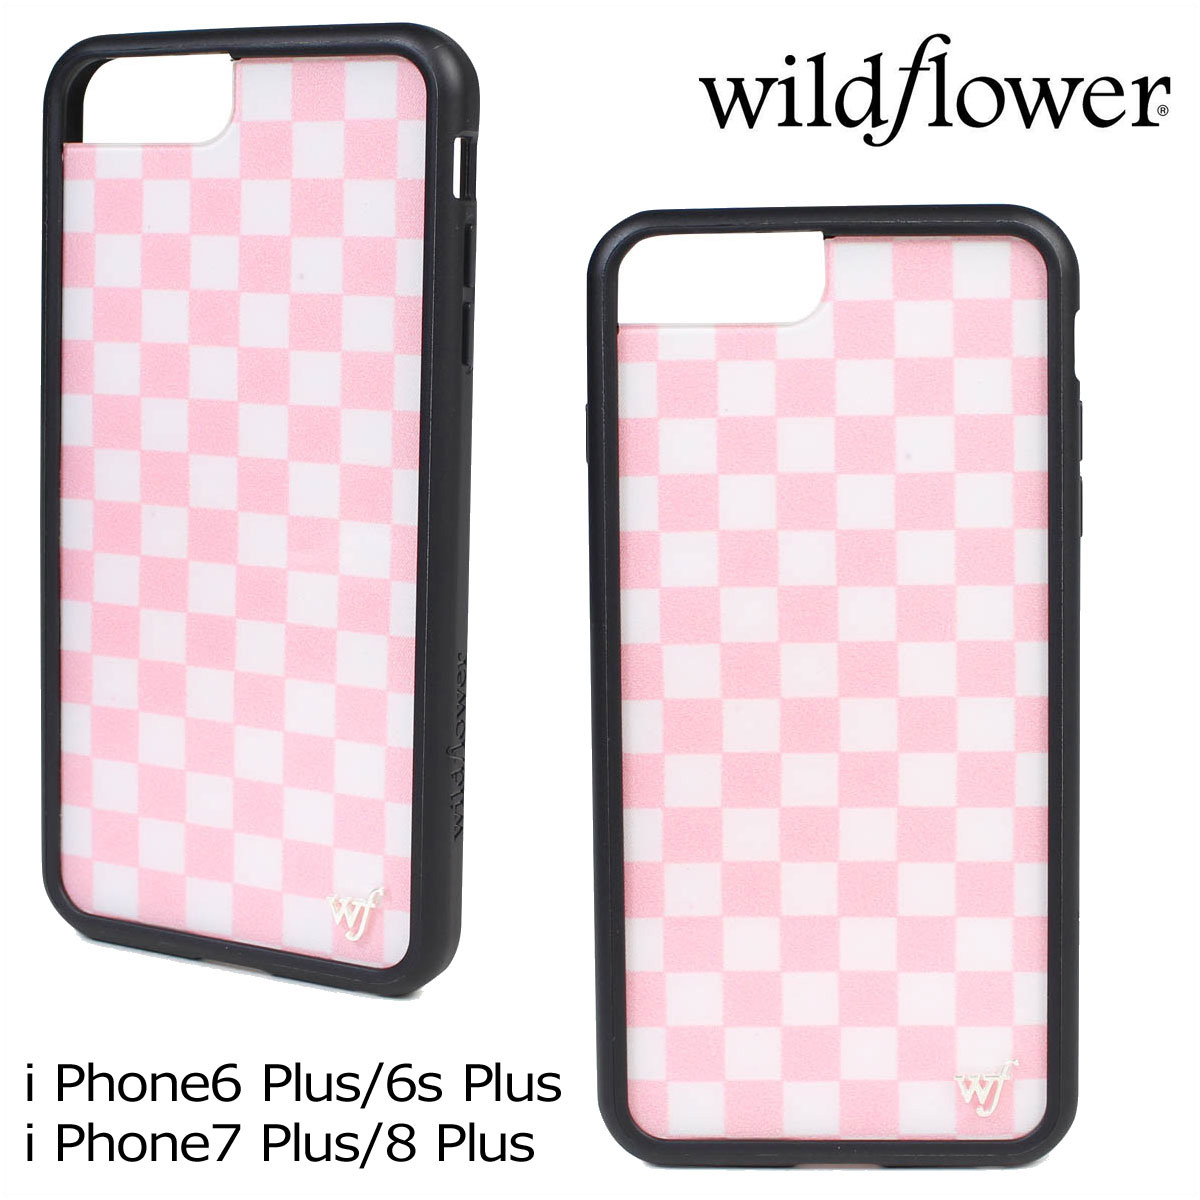 the best attitude 356d7 33110 Wild flower wildflower iPhone8 7 iPhone case 6 6s Plus smartphone eyephone  Lady's checker pink PCHE